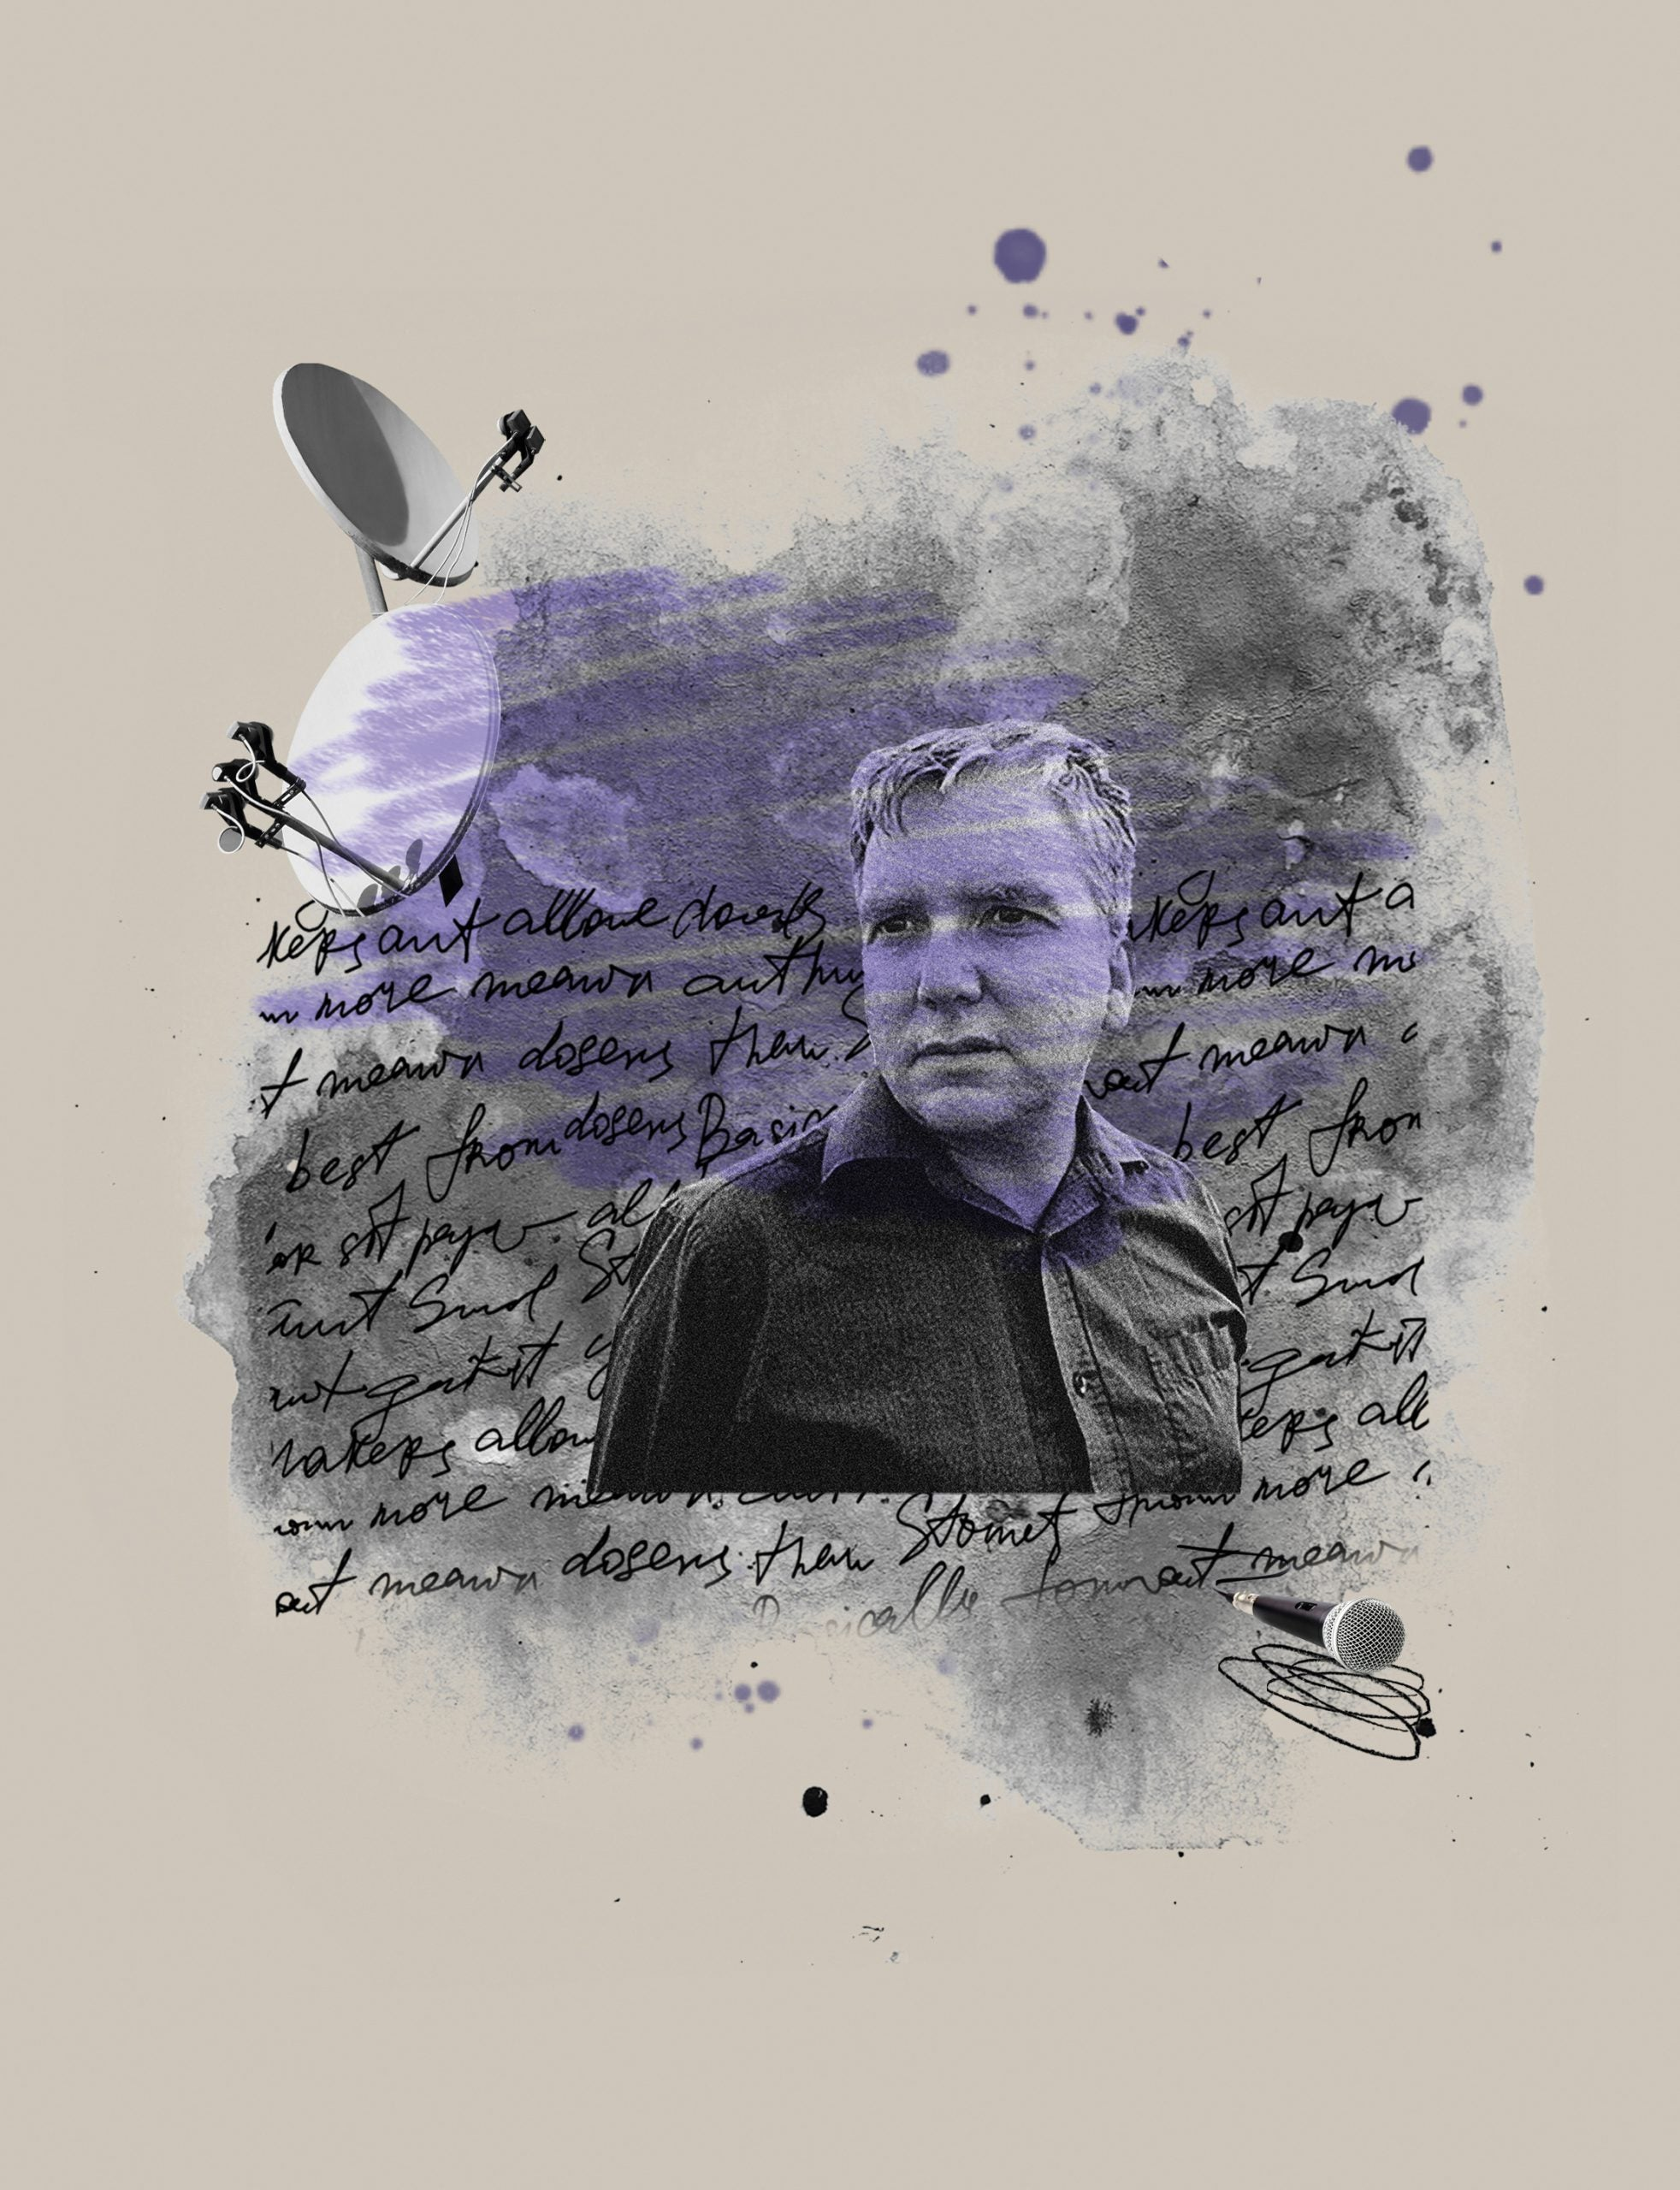 The ghosts of Mark Fisher